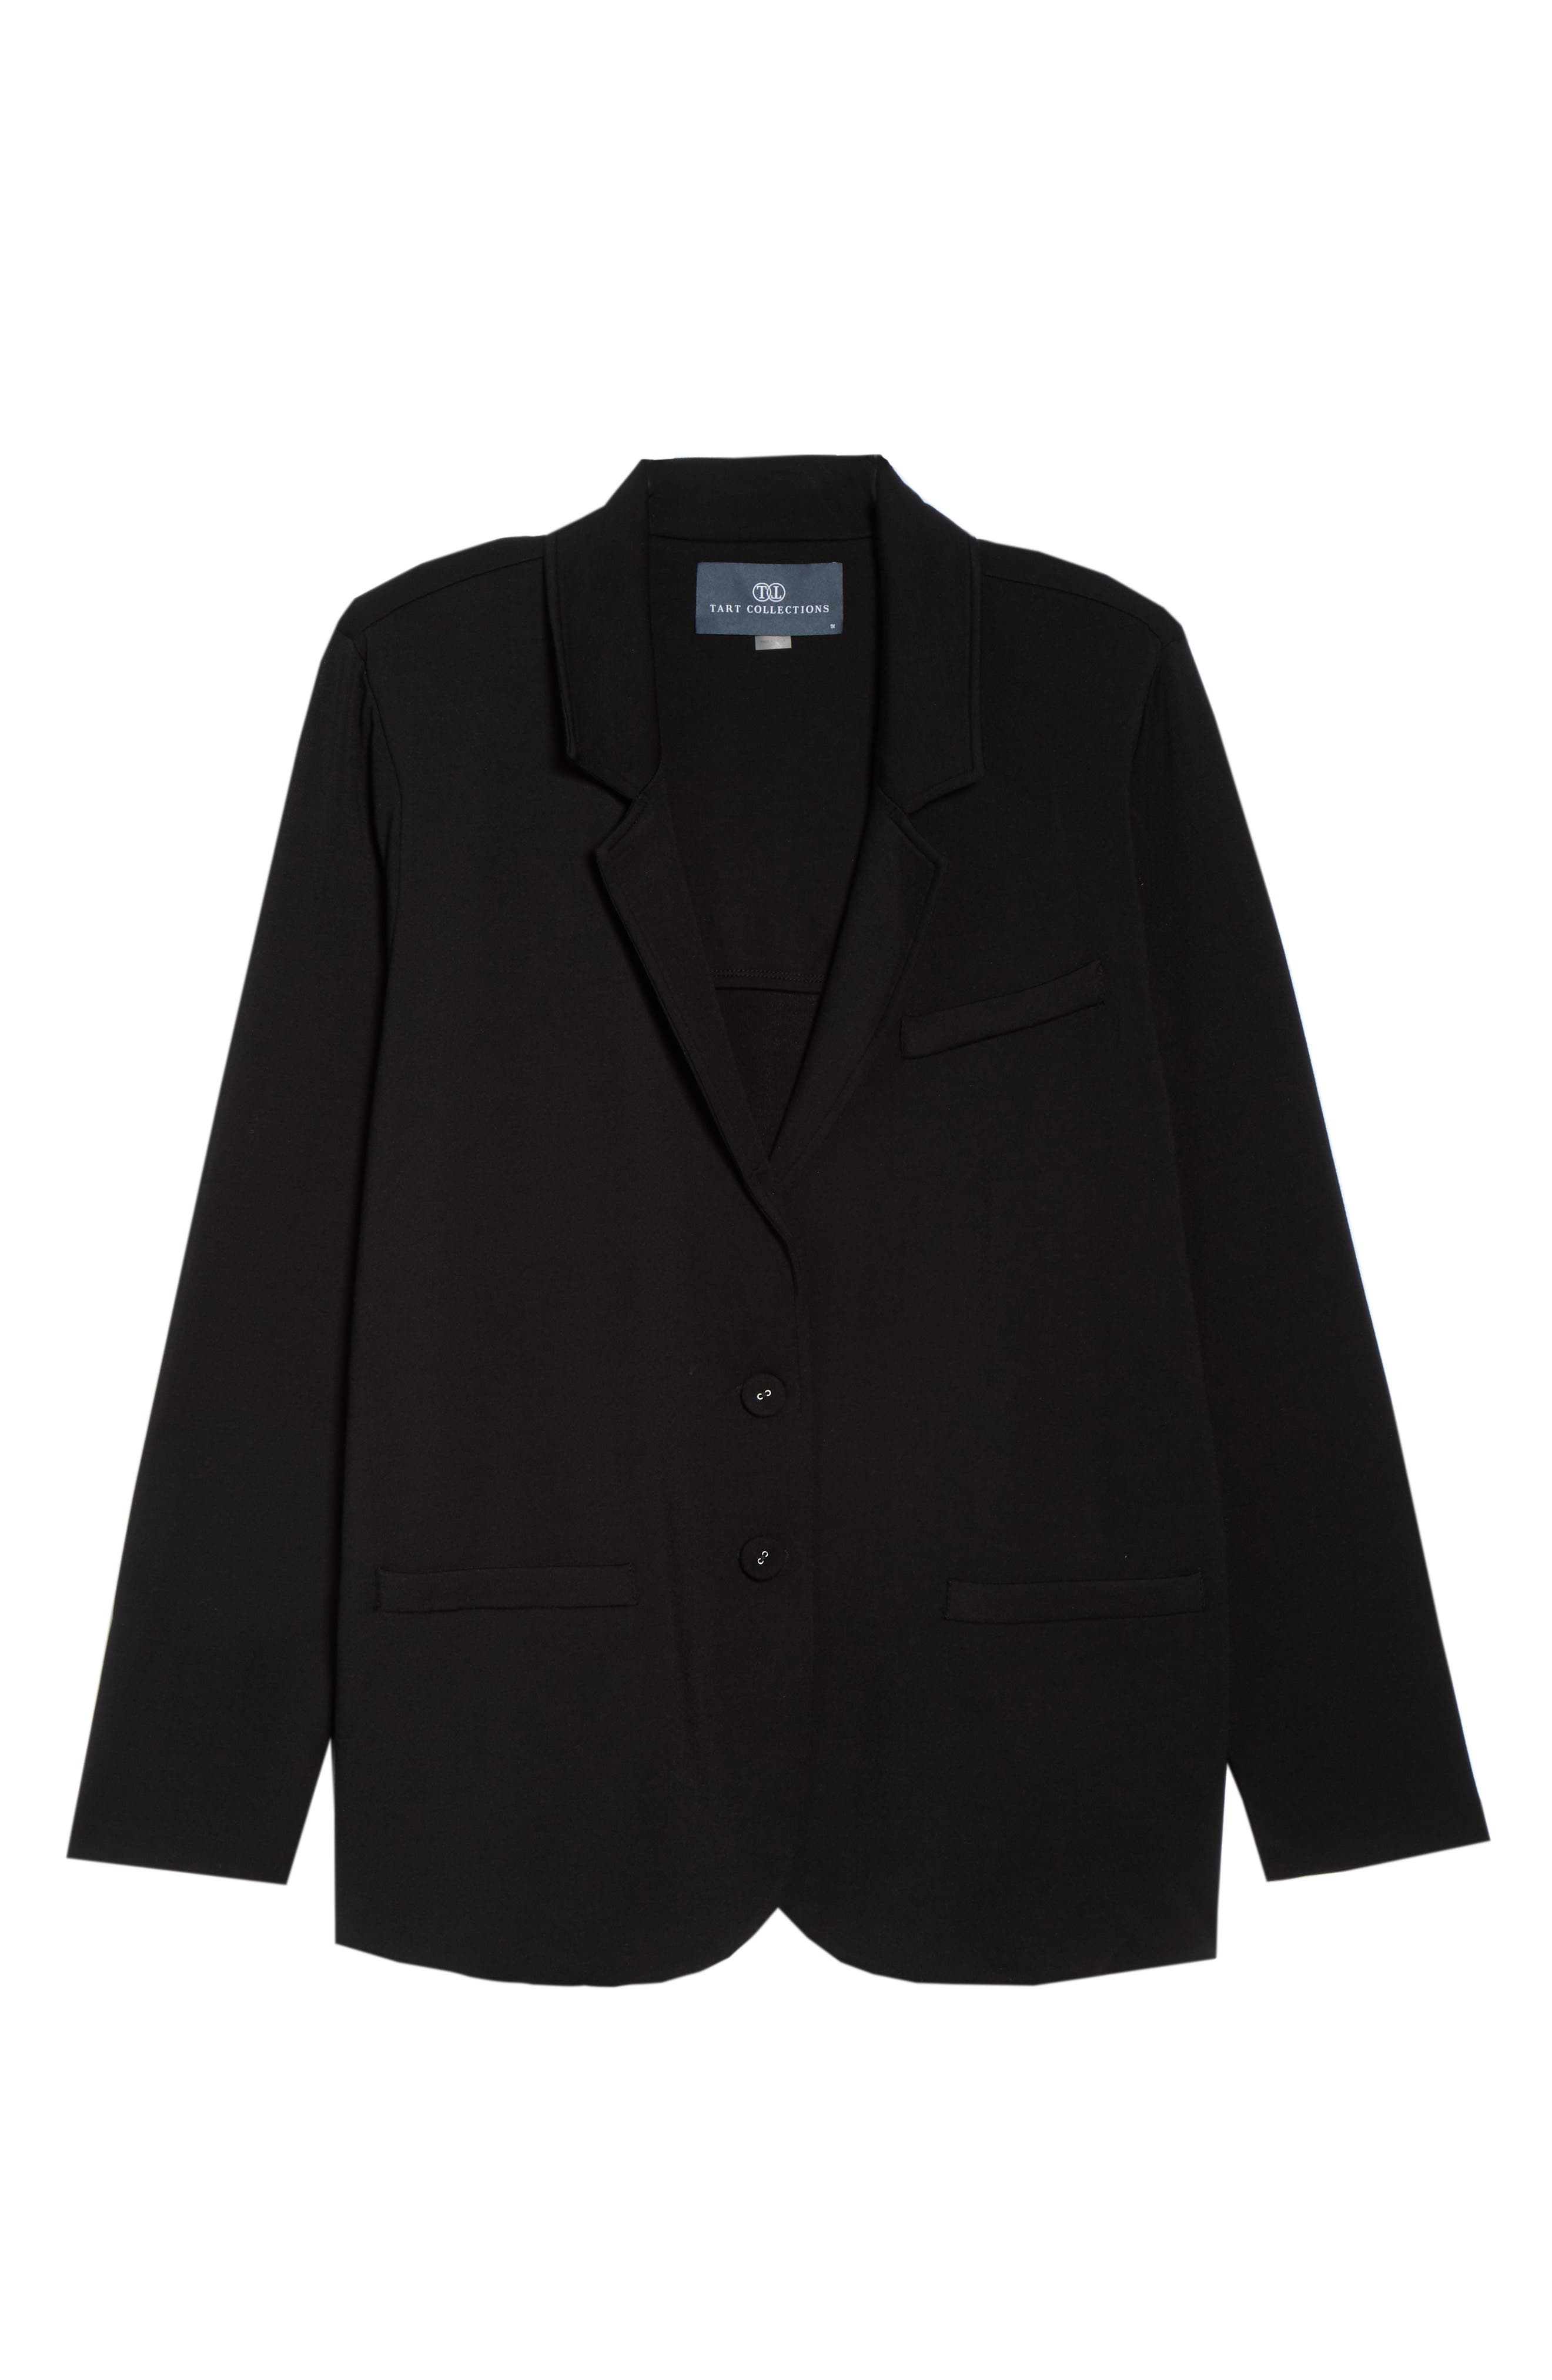 Knit Blazer,                             Alternate thumbnail 6, color,                             001